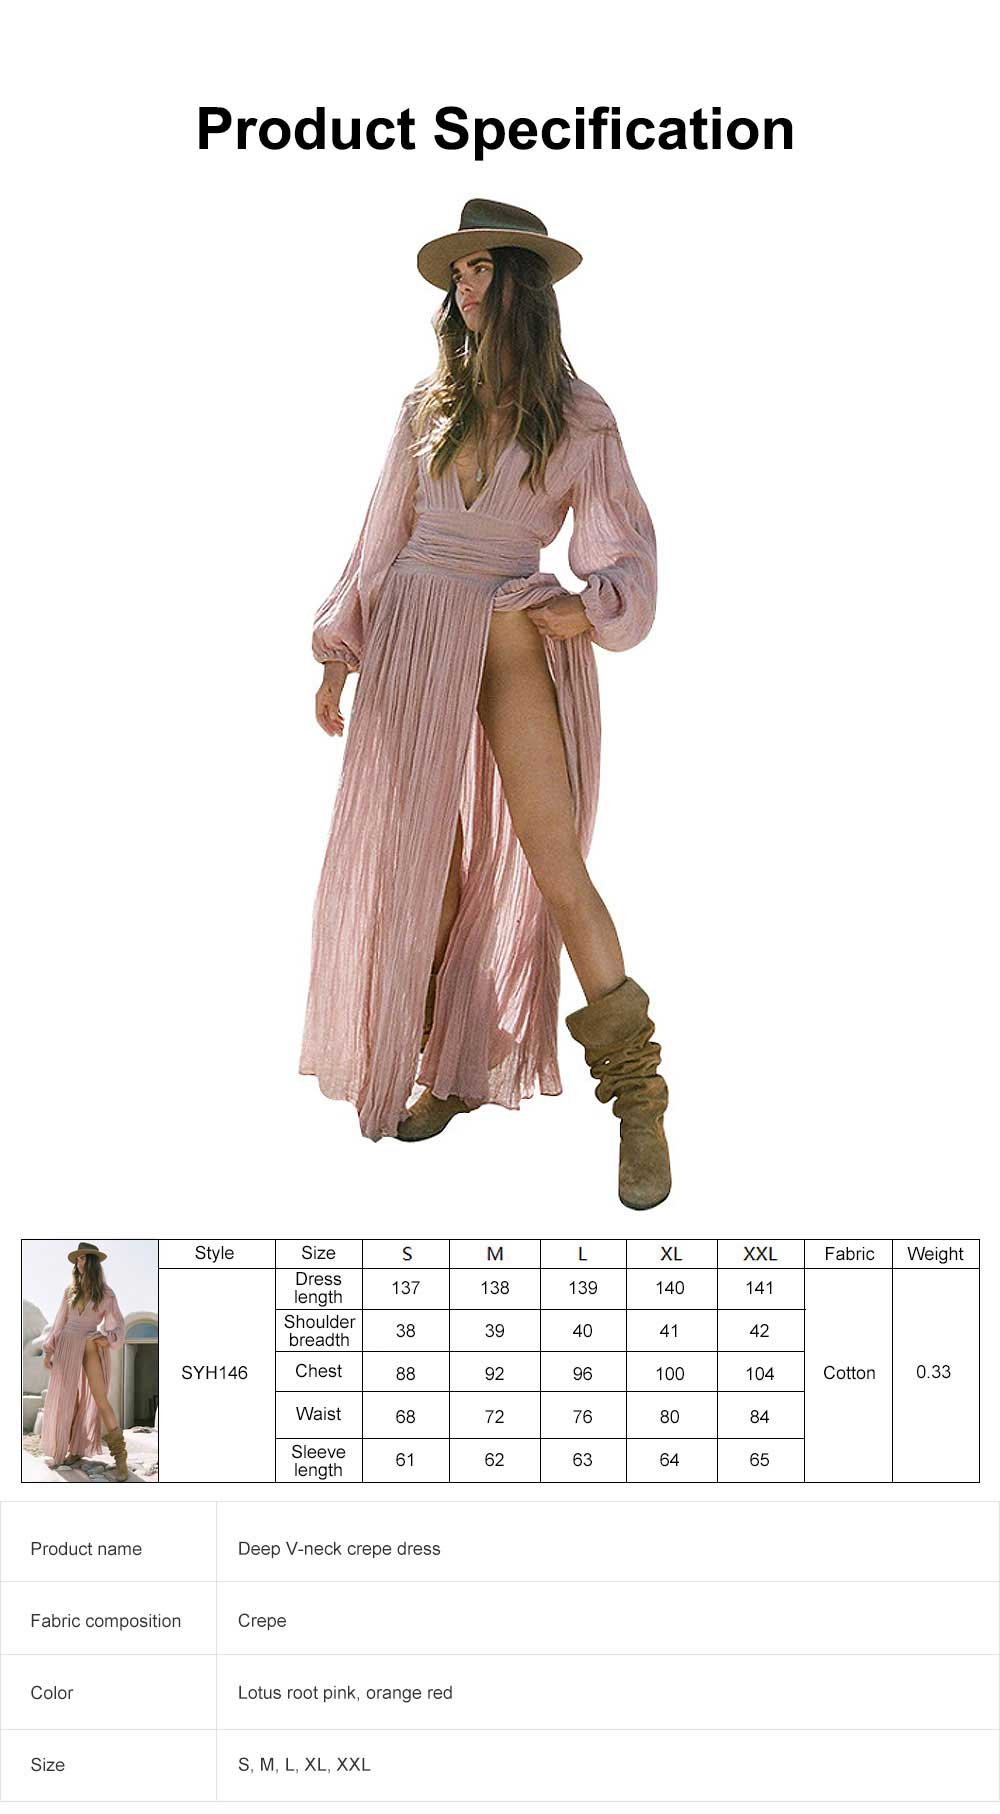 High Slit V Neck with Lantern Sleeves Dress for Vocation, Leisure Pleated Deep V-neck Long Dress 6